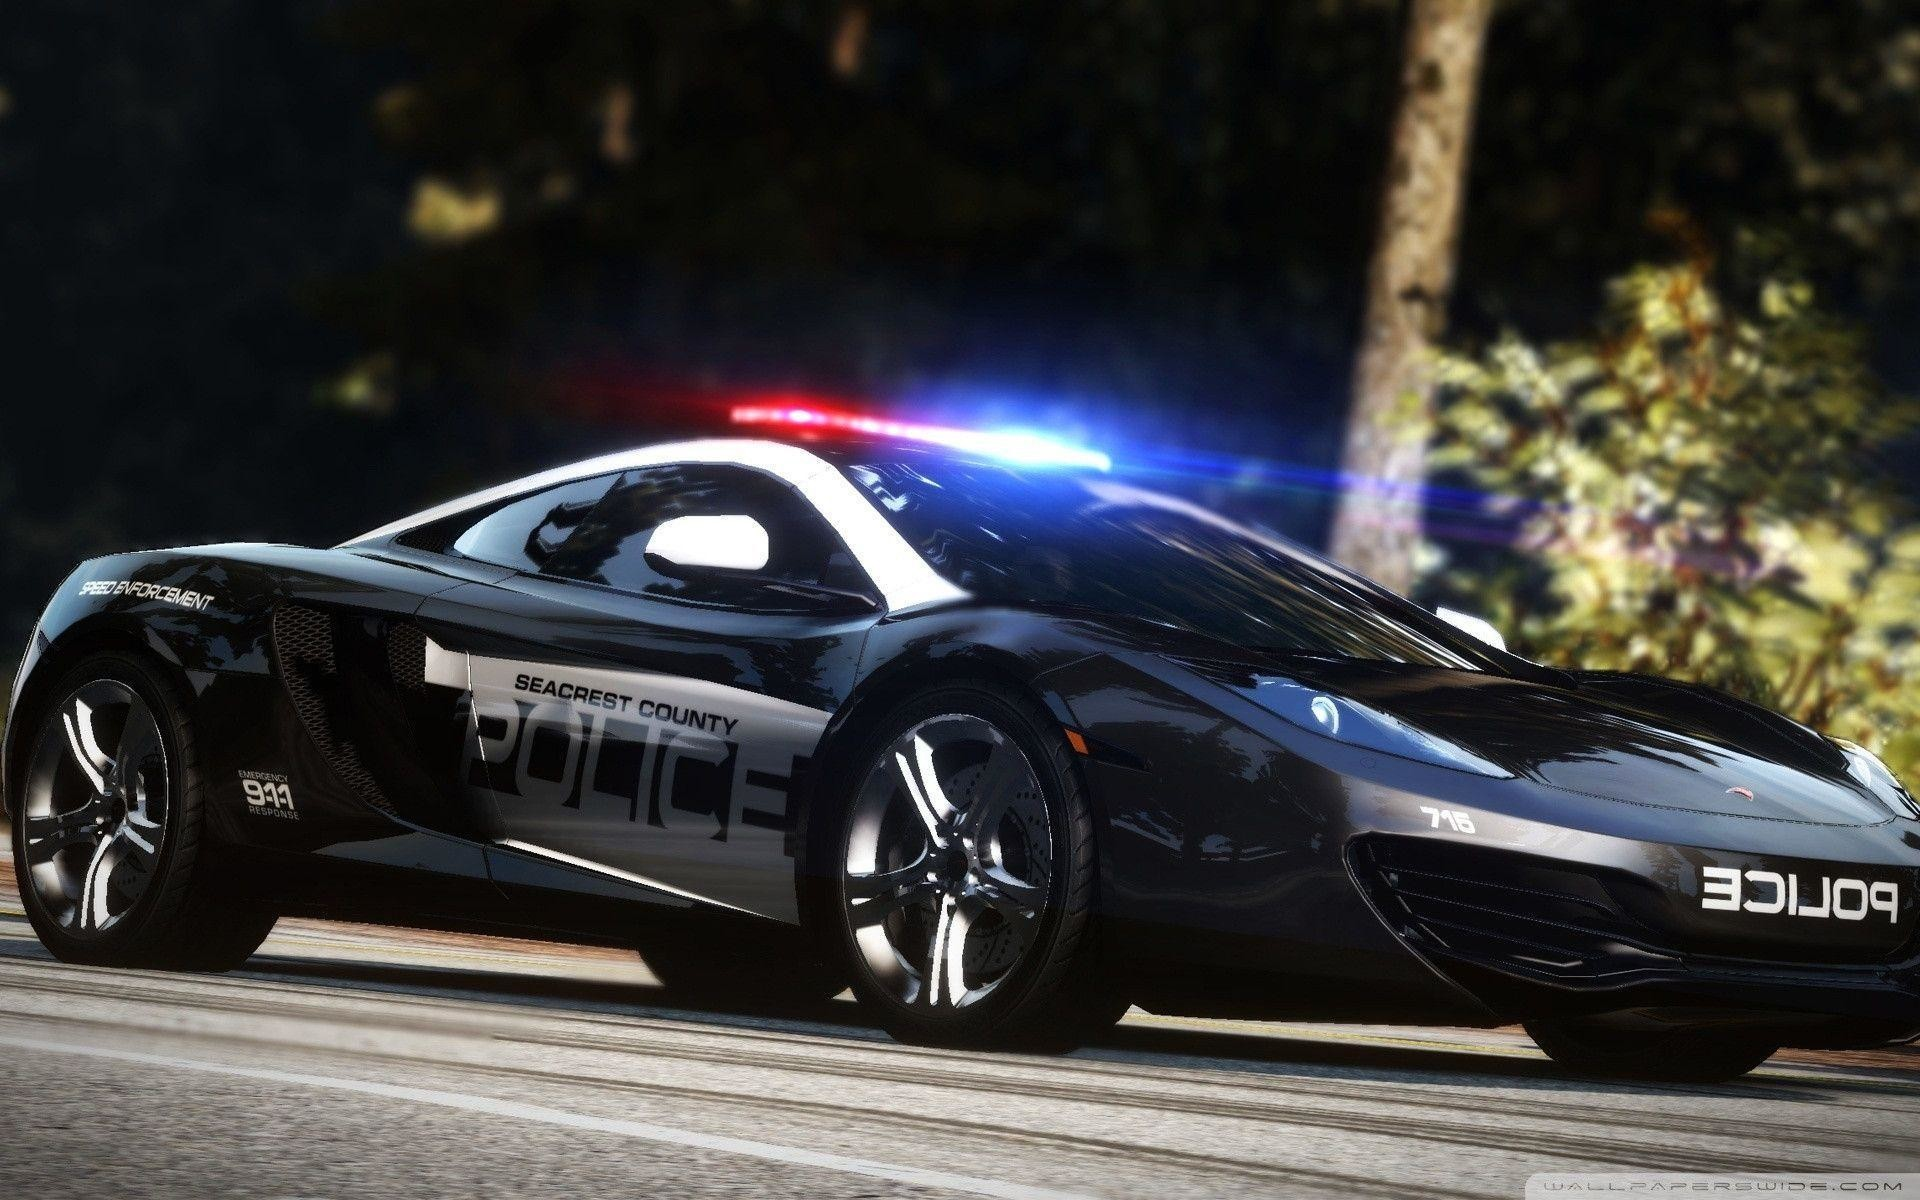 Police Wallpapers – Full HD wallpaper search